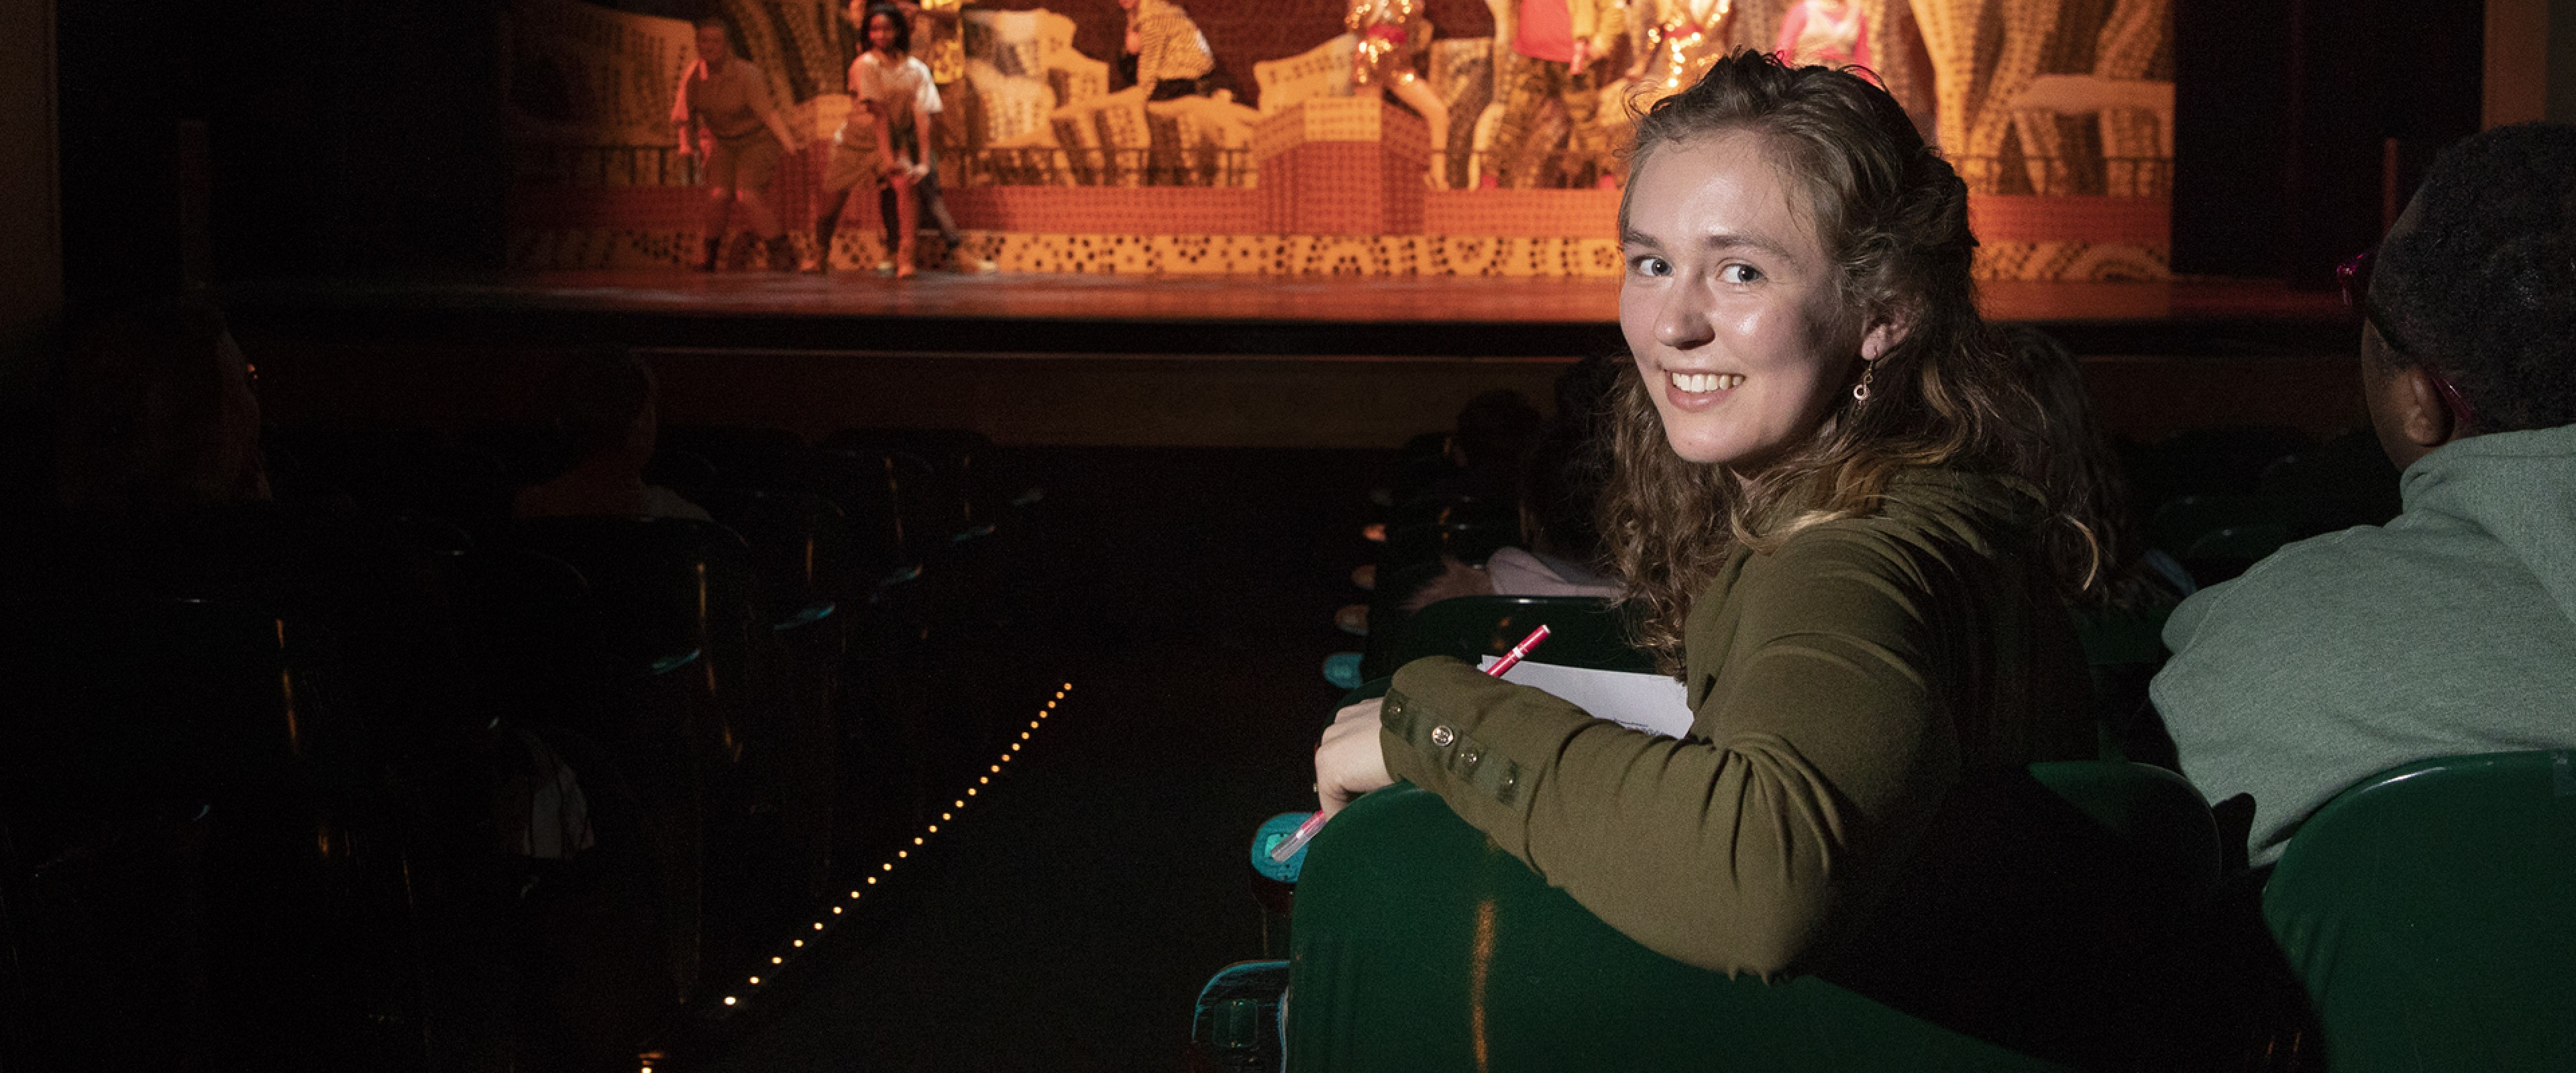 WMU student Abby Tongue sits in a theatre seat as a play is performed onstage